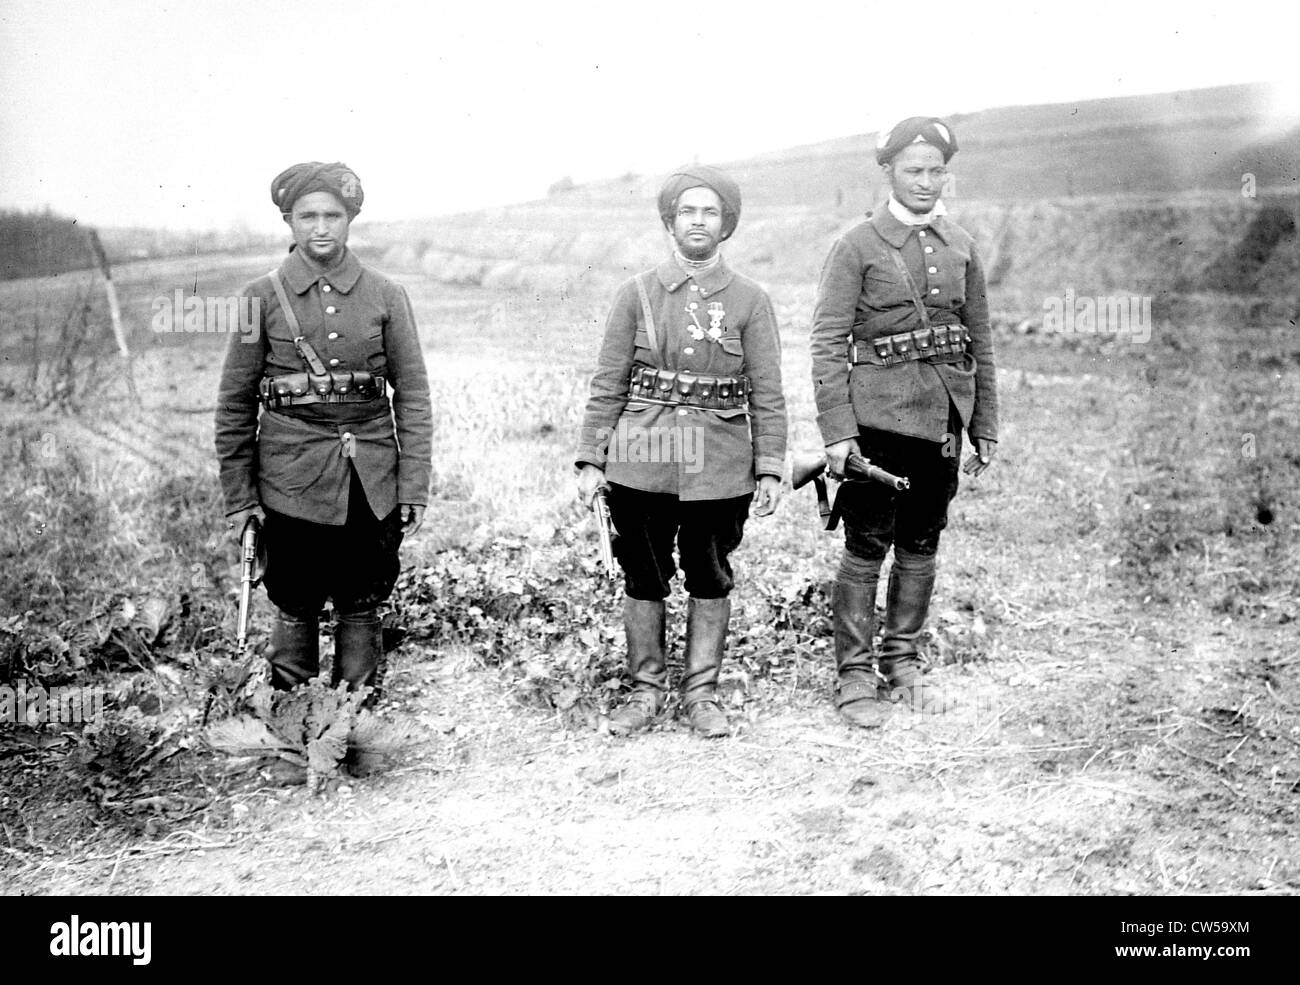 New uniform of the Moroccan cavalry corps in the French army in North Africa - Stock Image